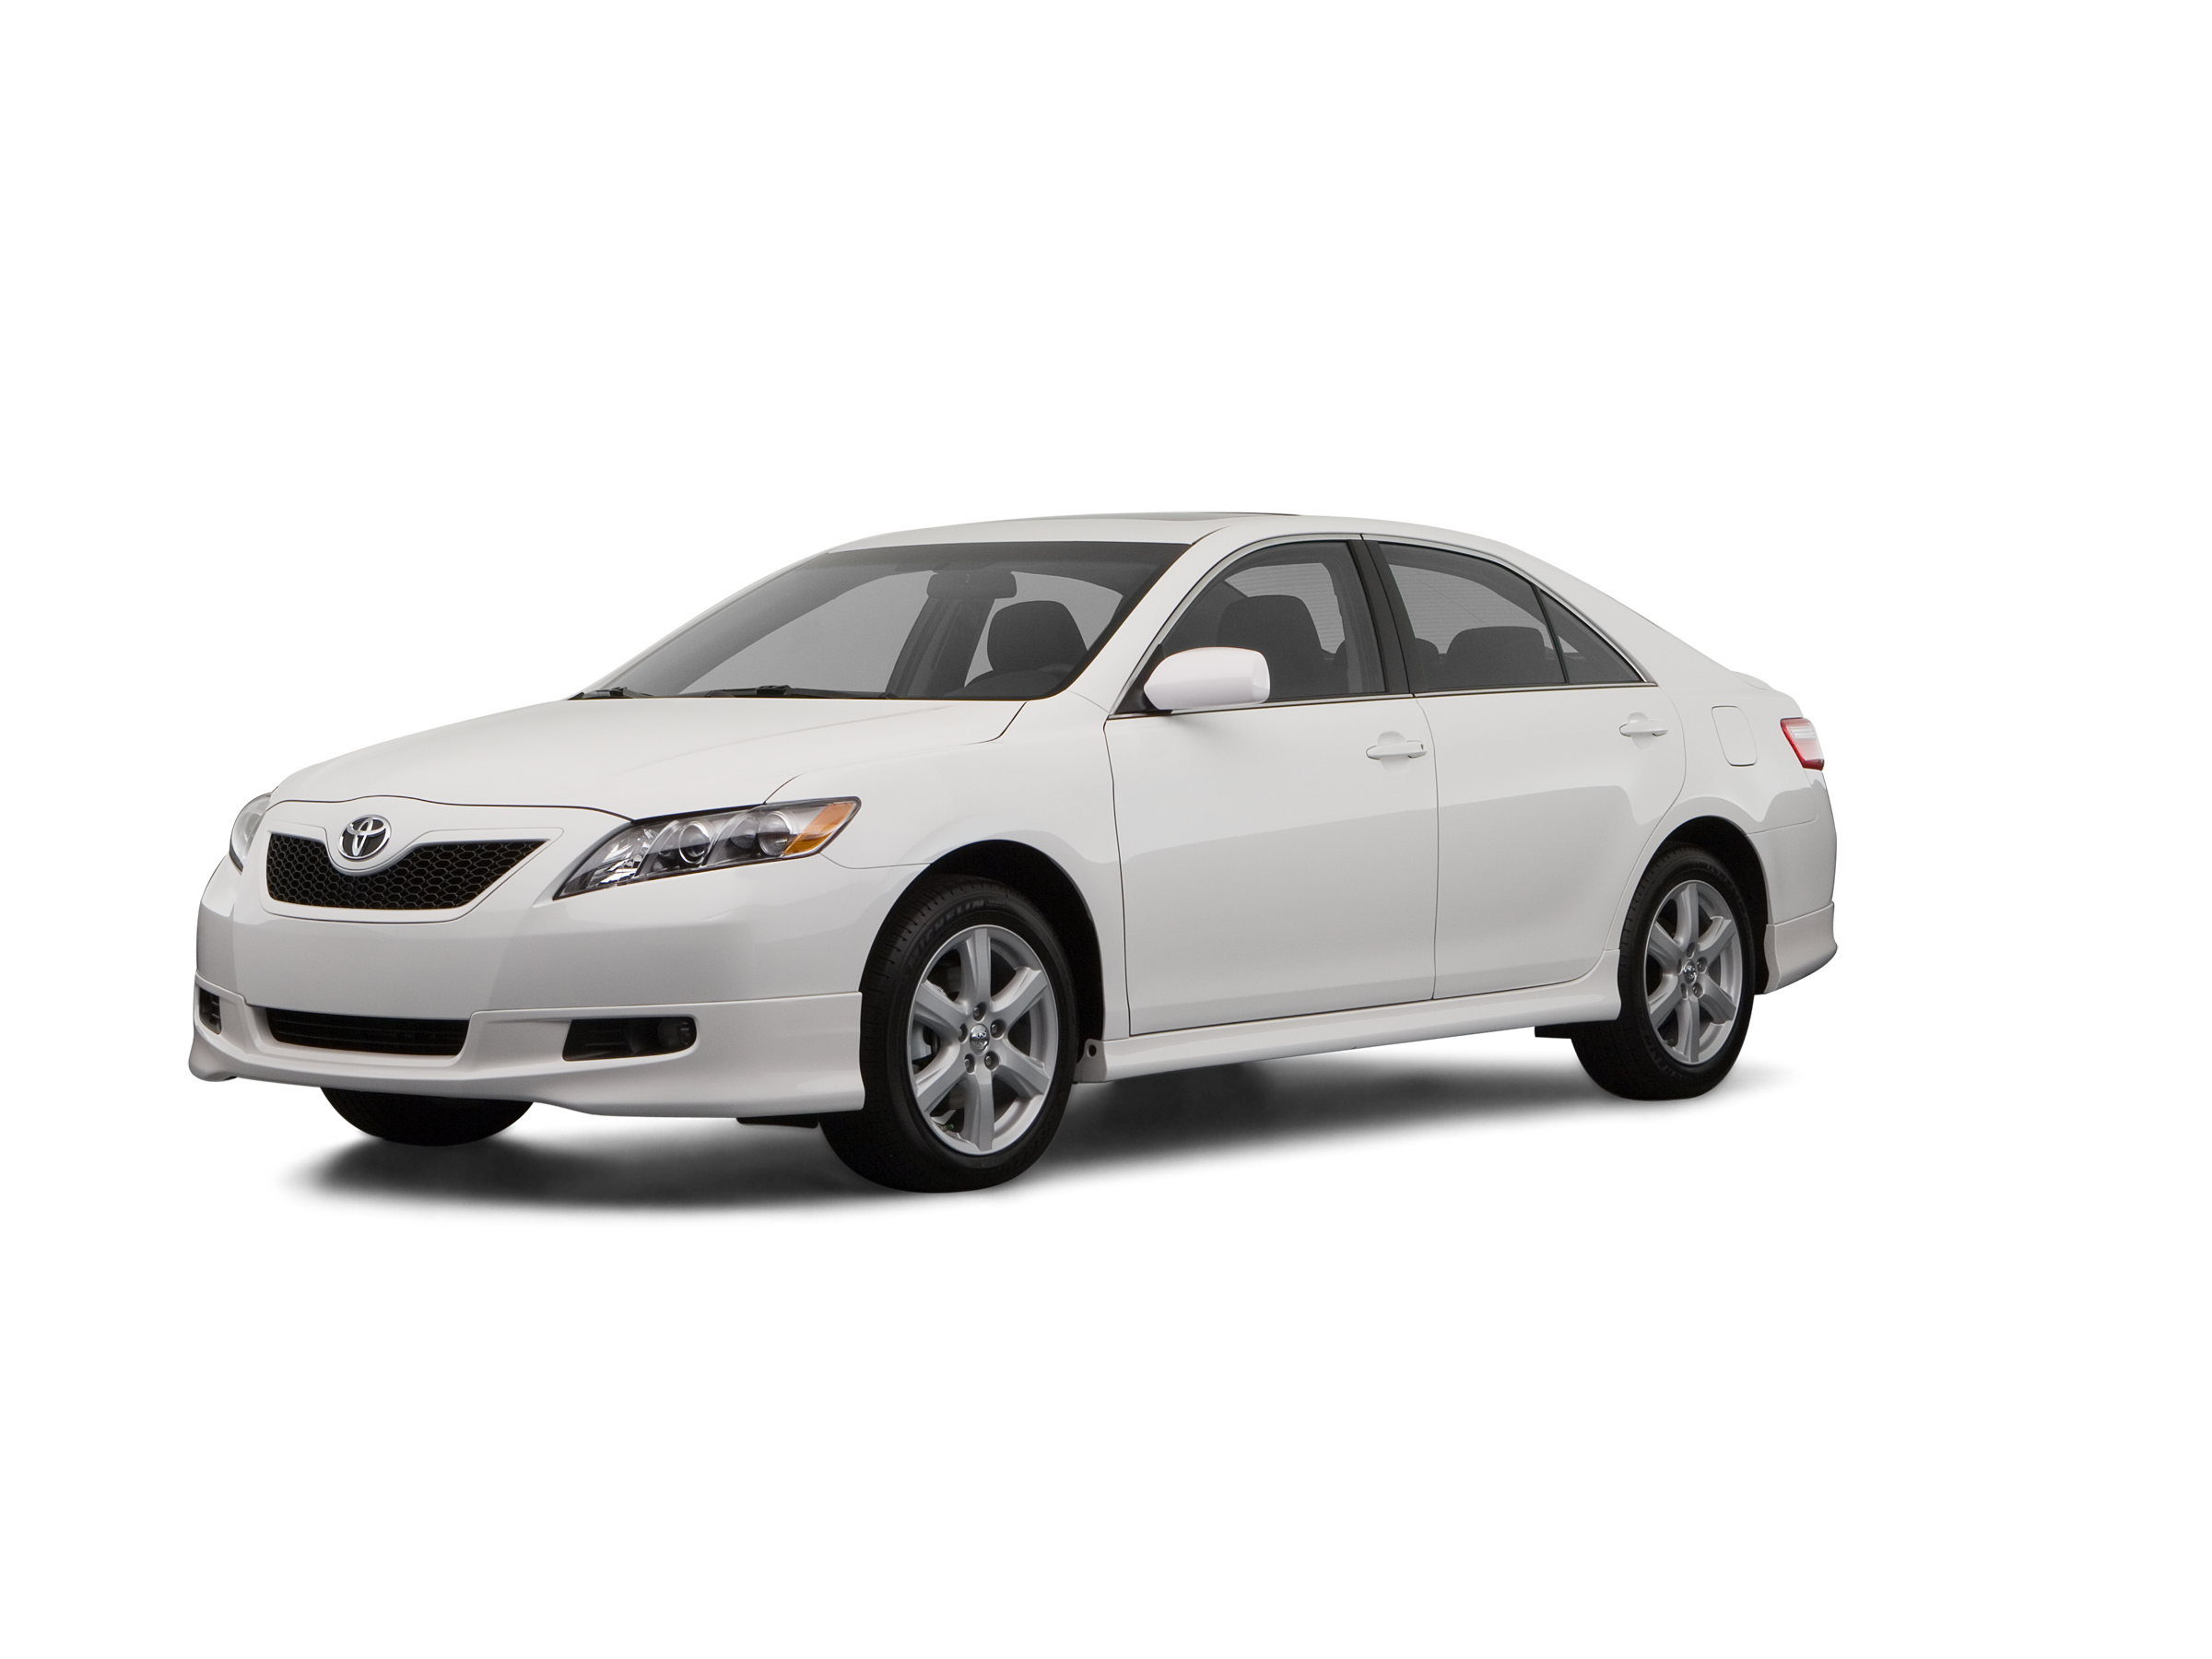 2008 Toyota Camry Values Cars For Sale Kelley Blue Book